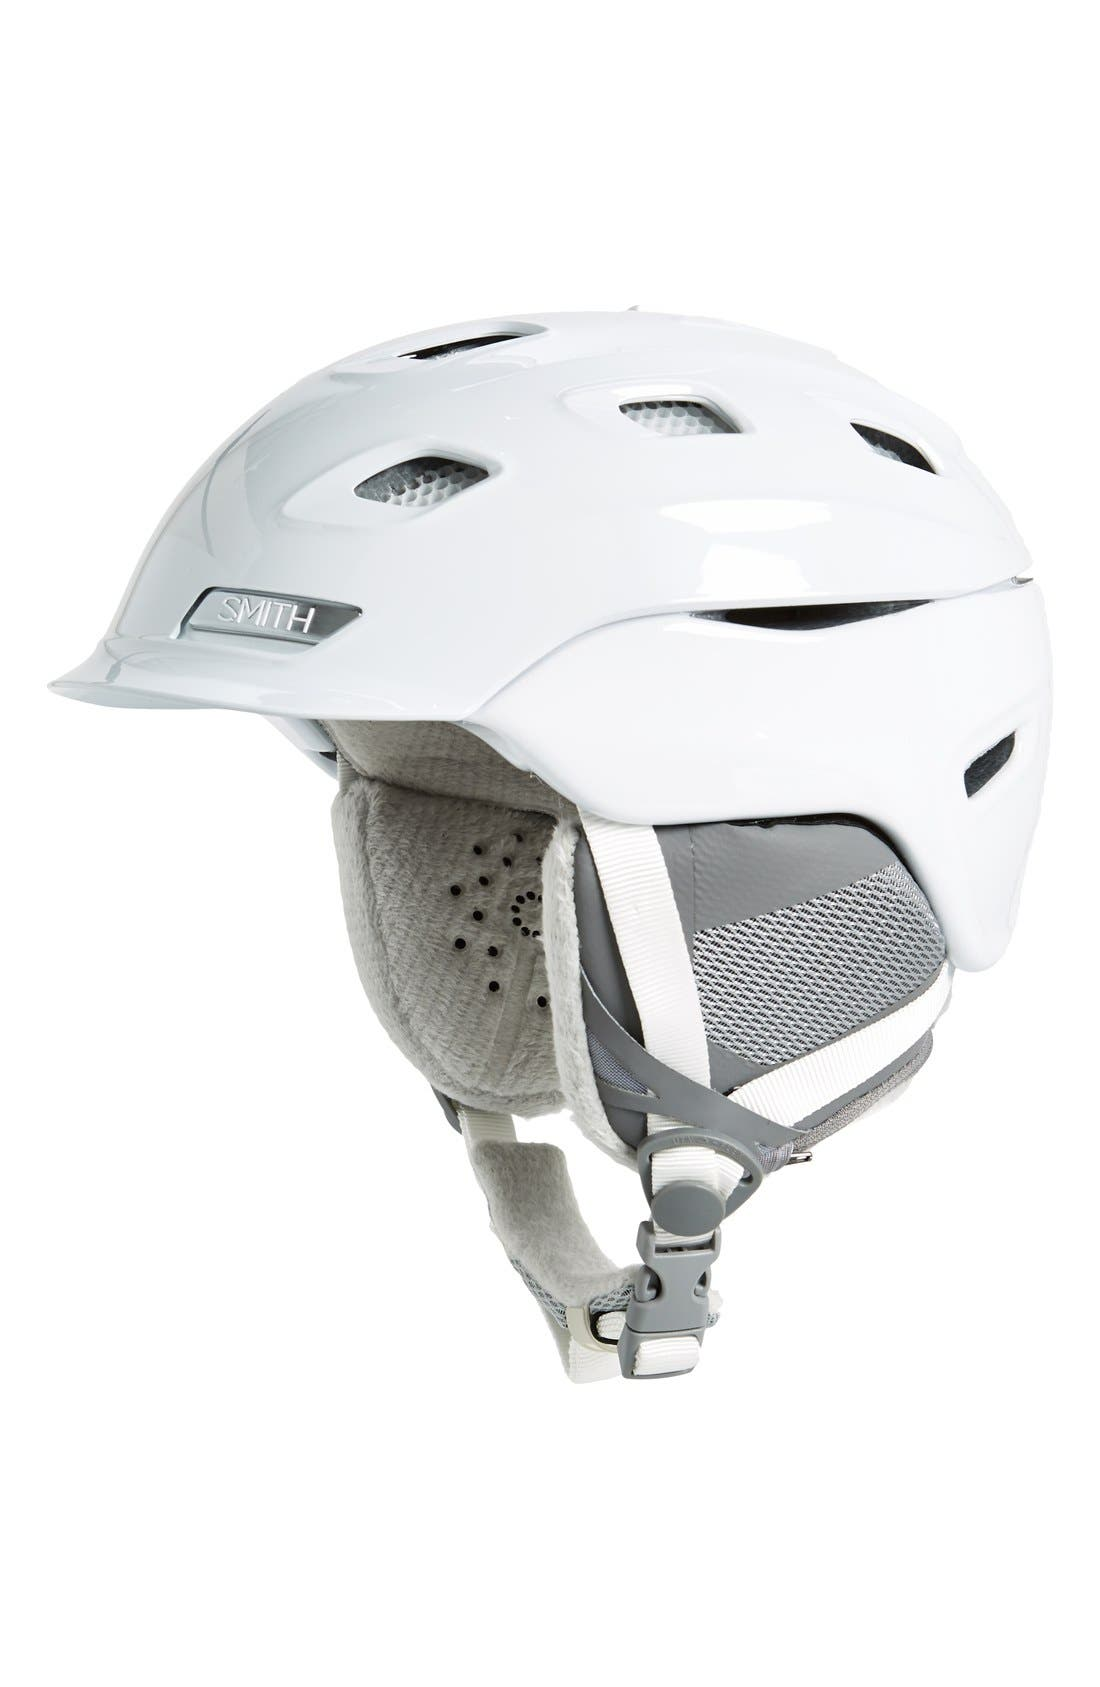 SMITH 'Vantage' Snow Helmet